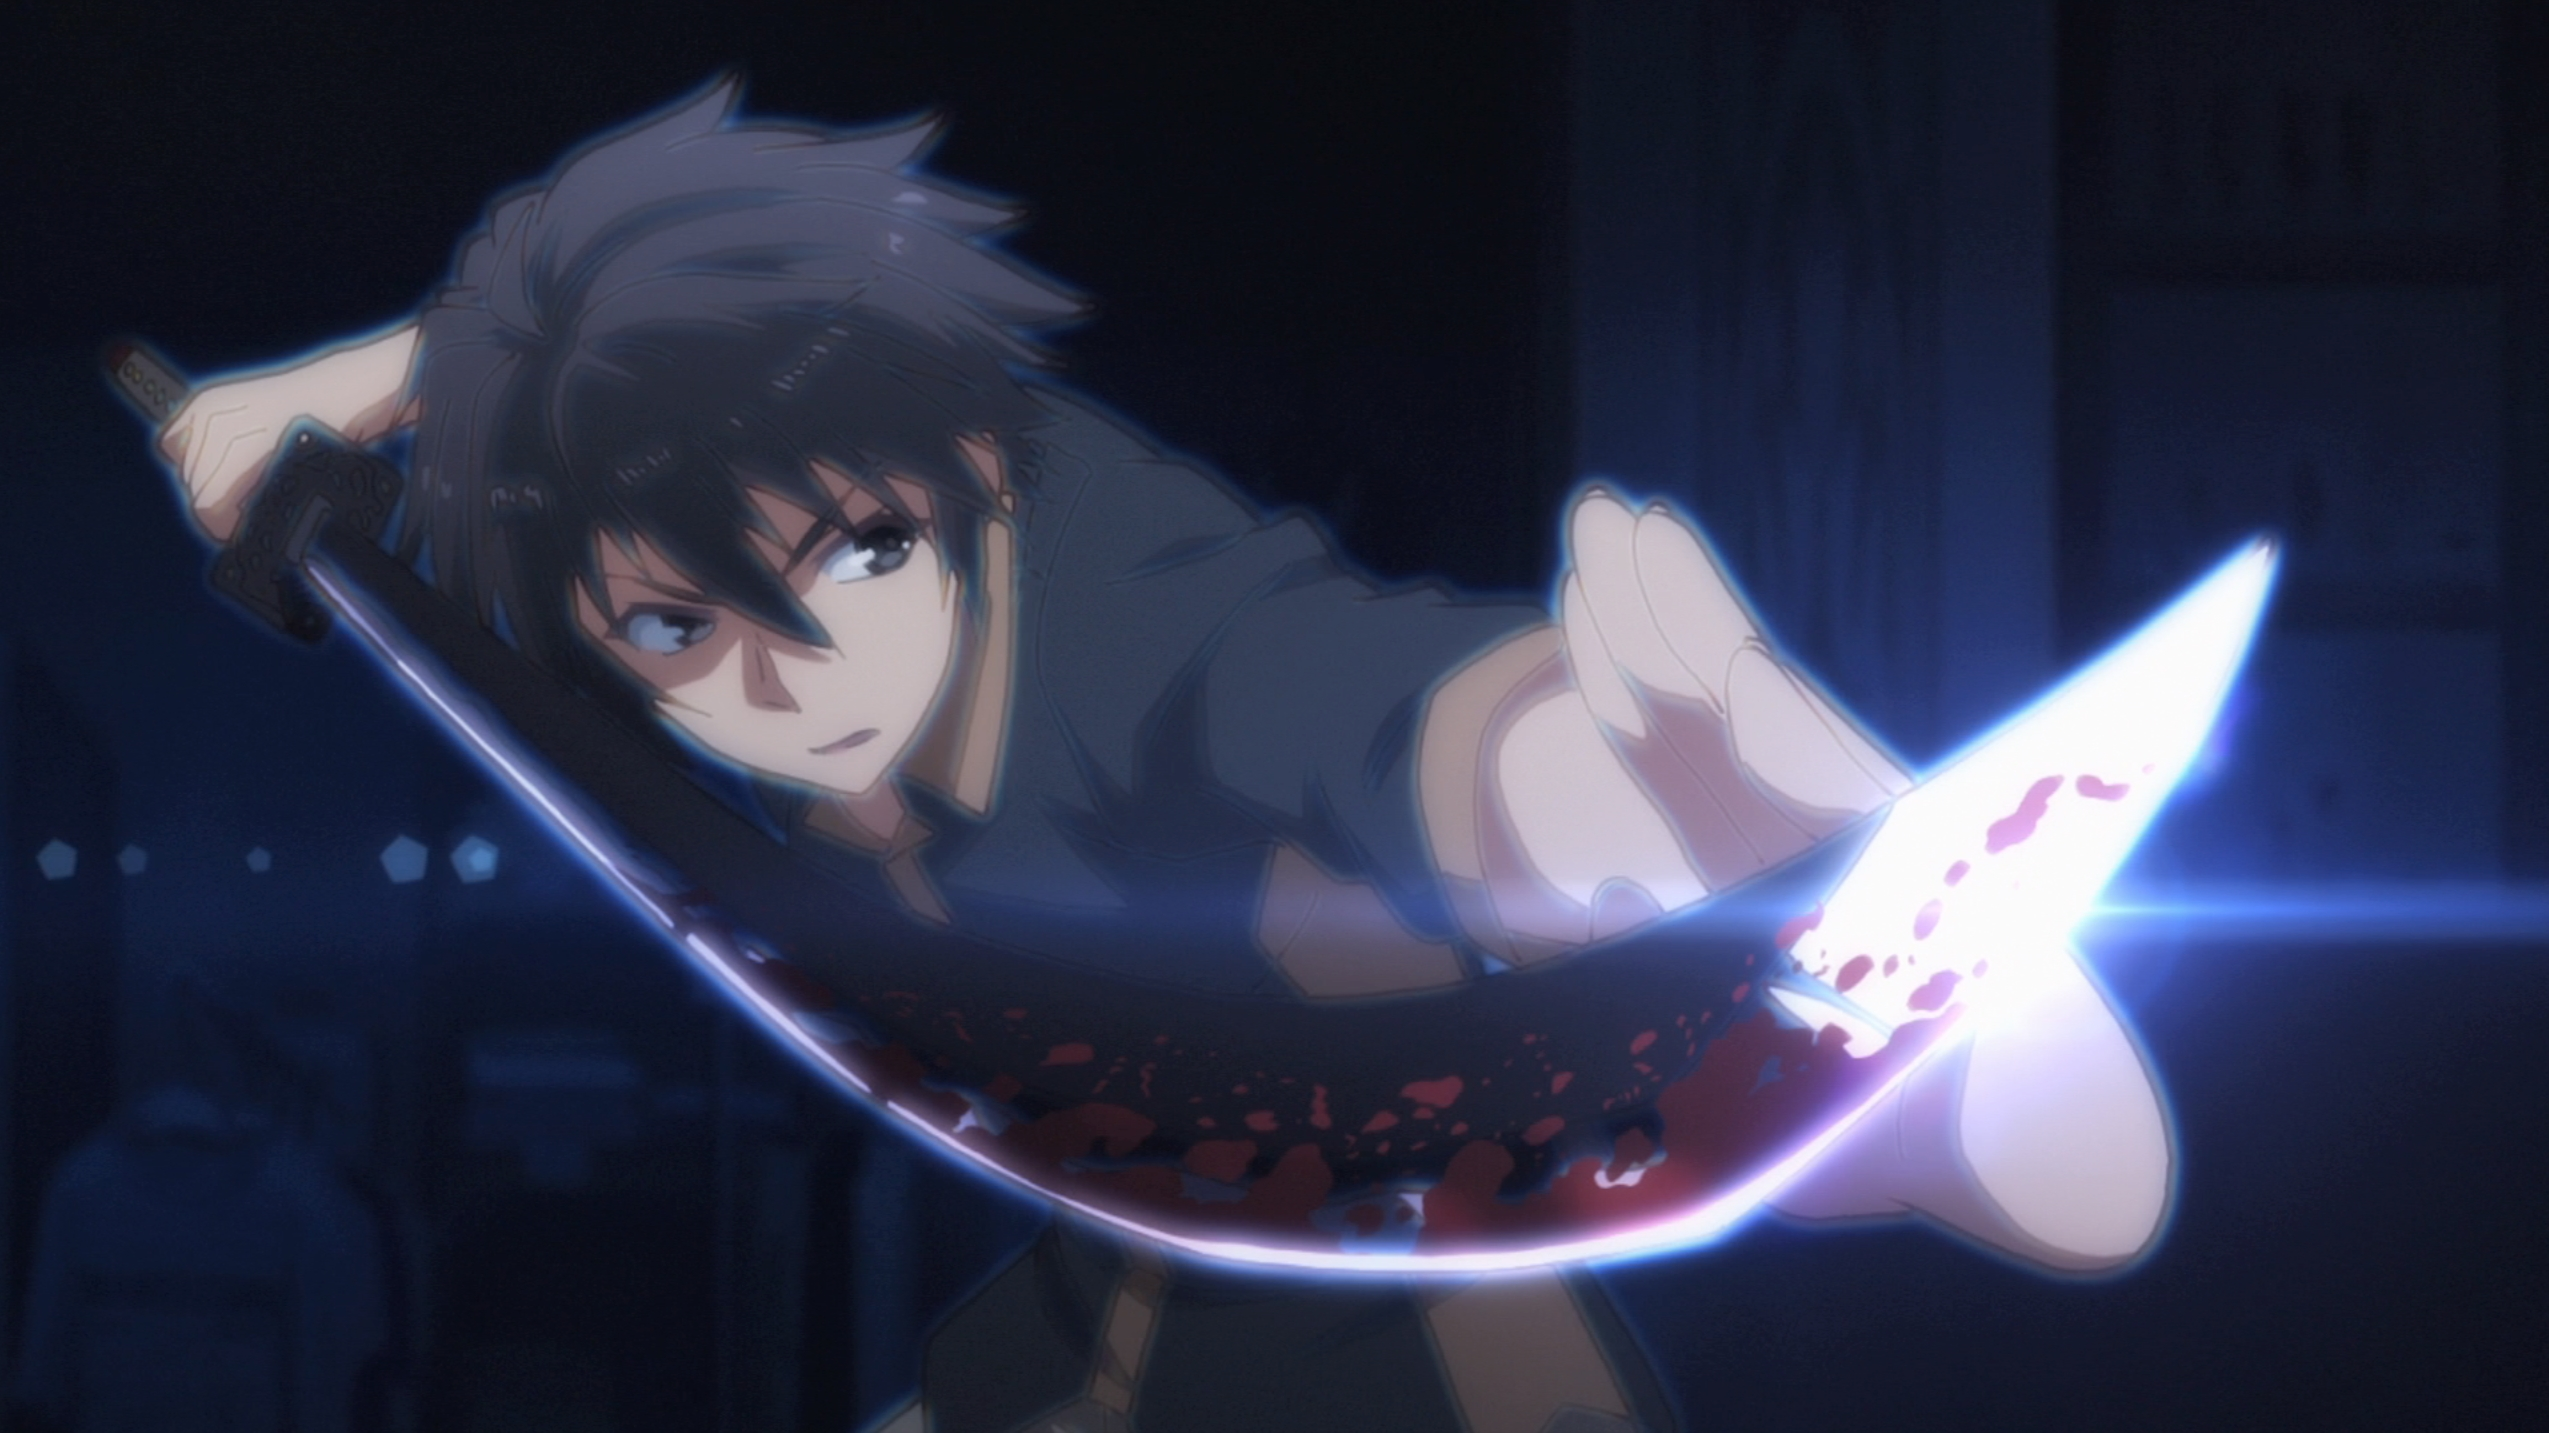 Ikki Kurogane in Chilvary of a Failed Knight